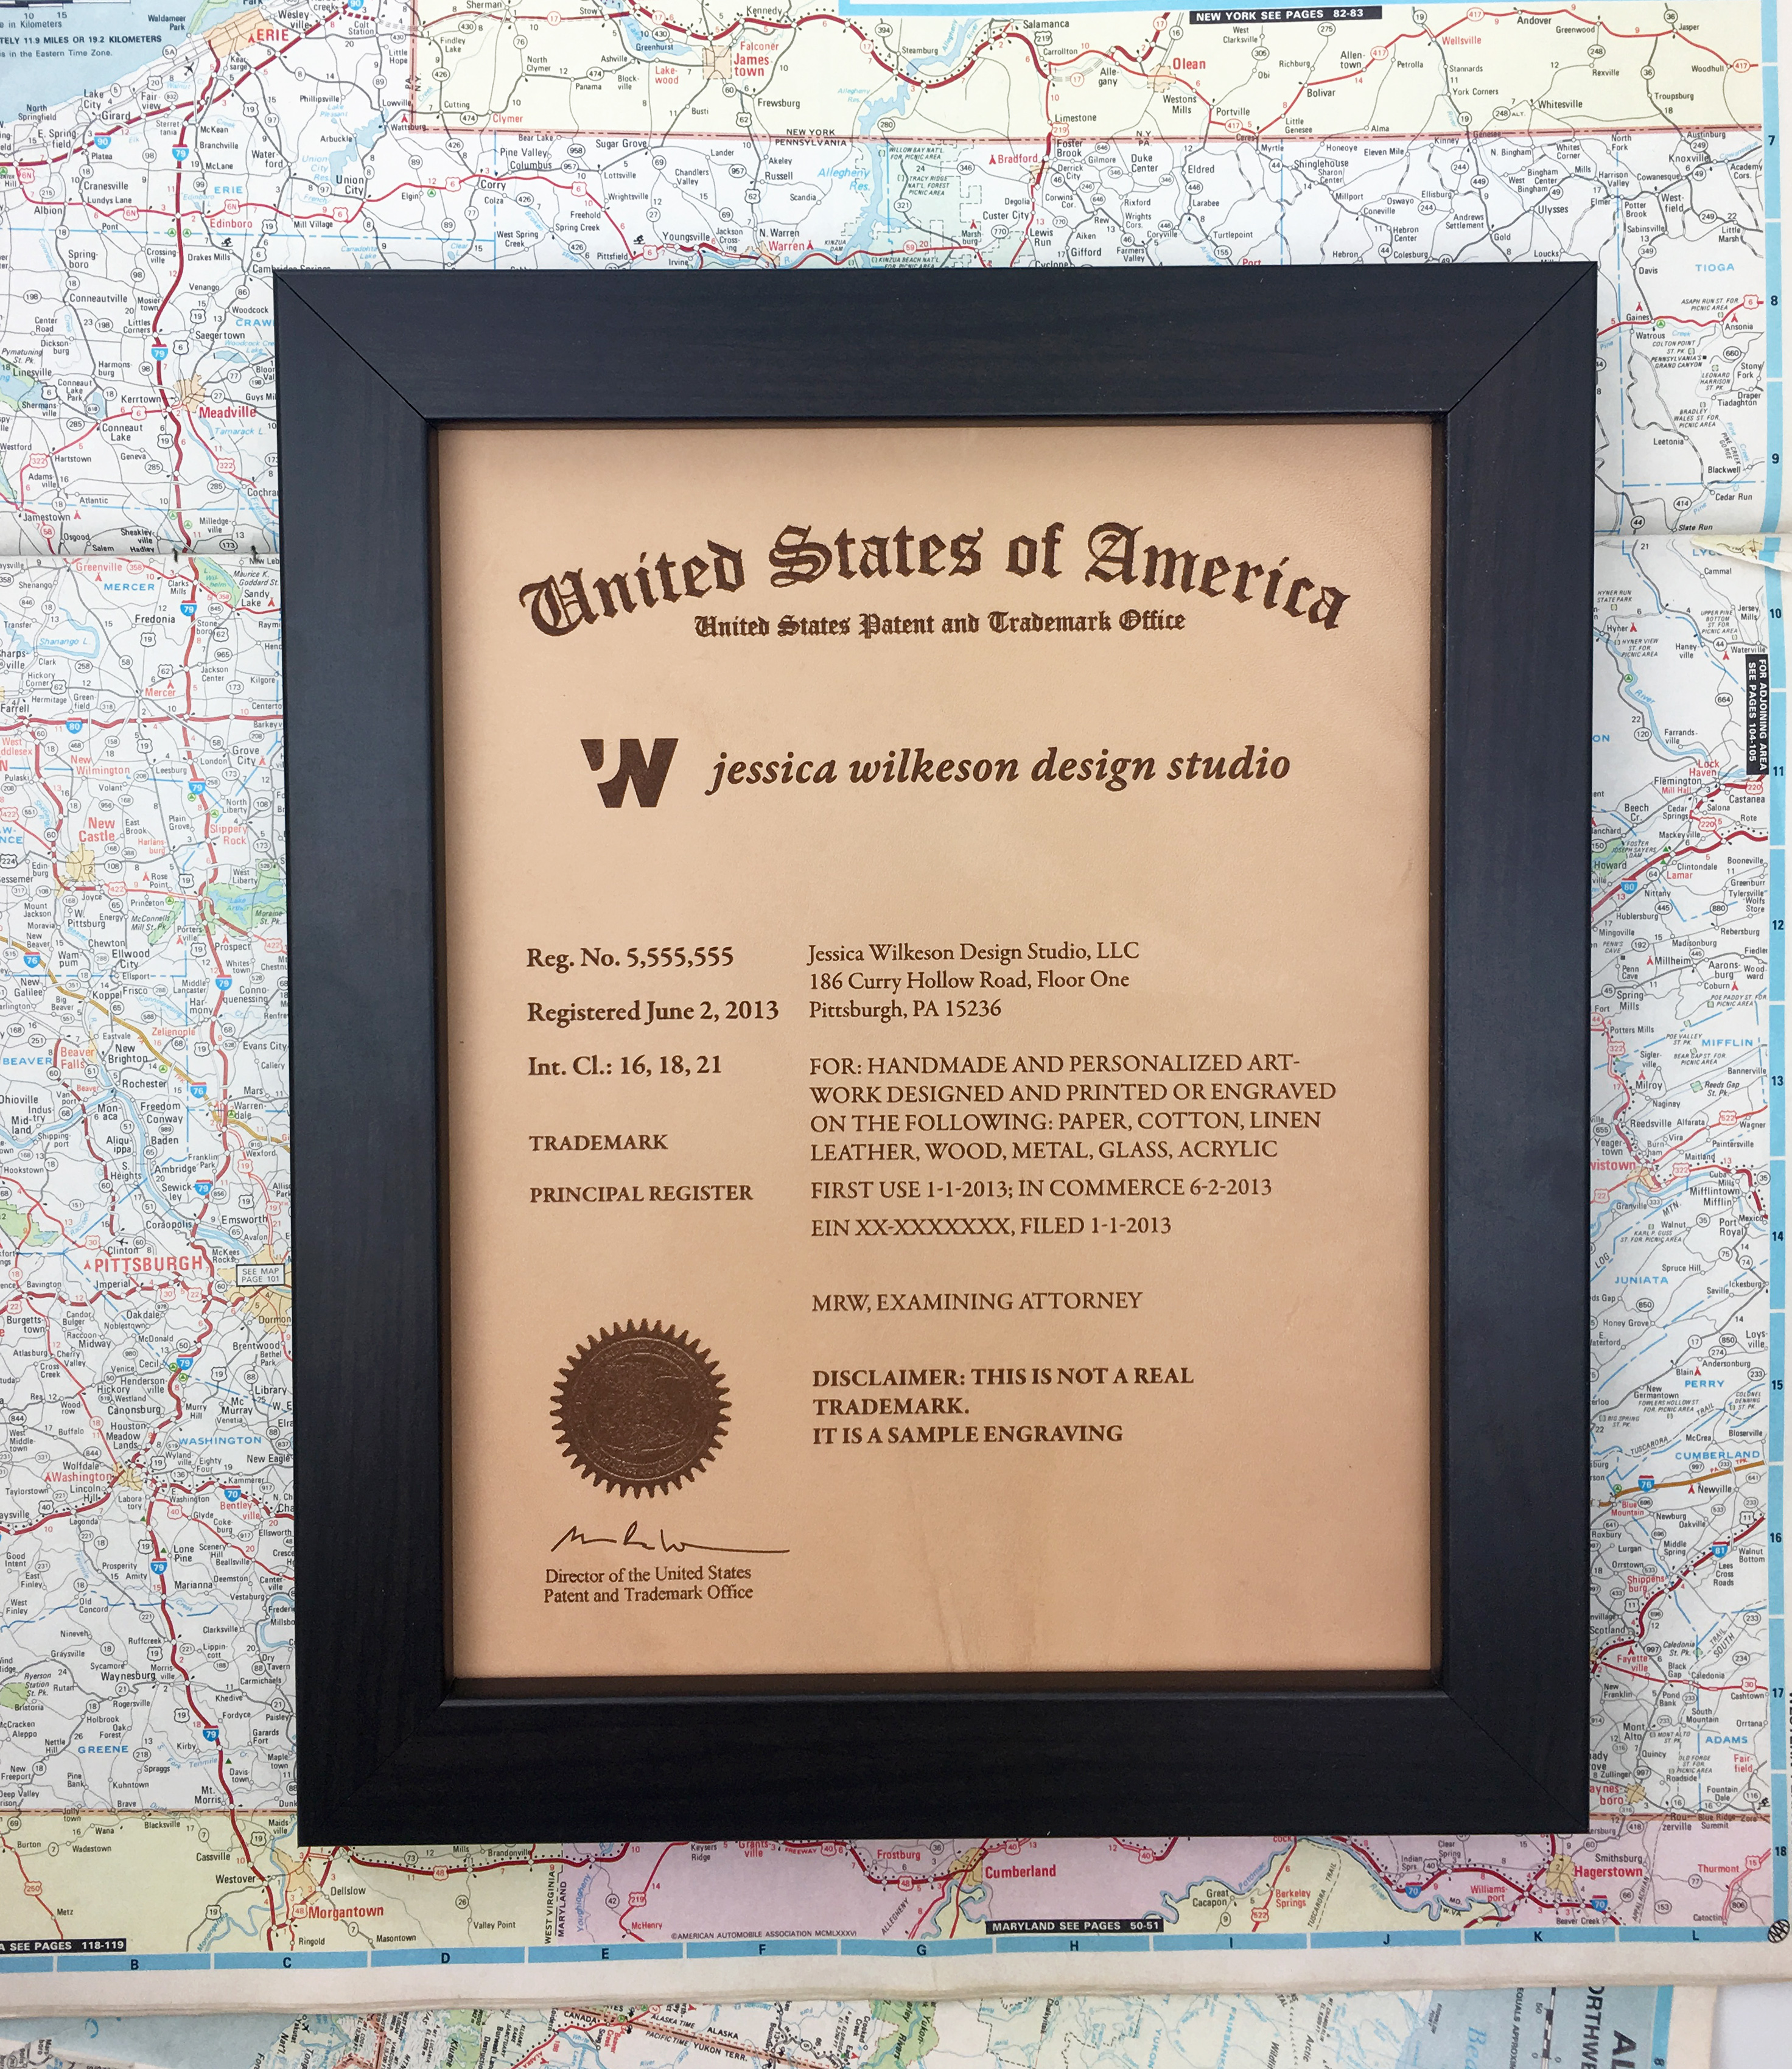 United States Trademark Registration plaque on leather